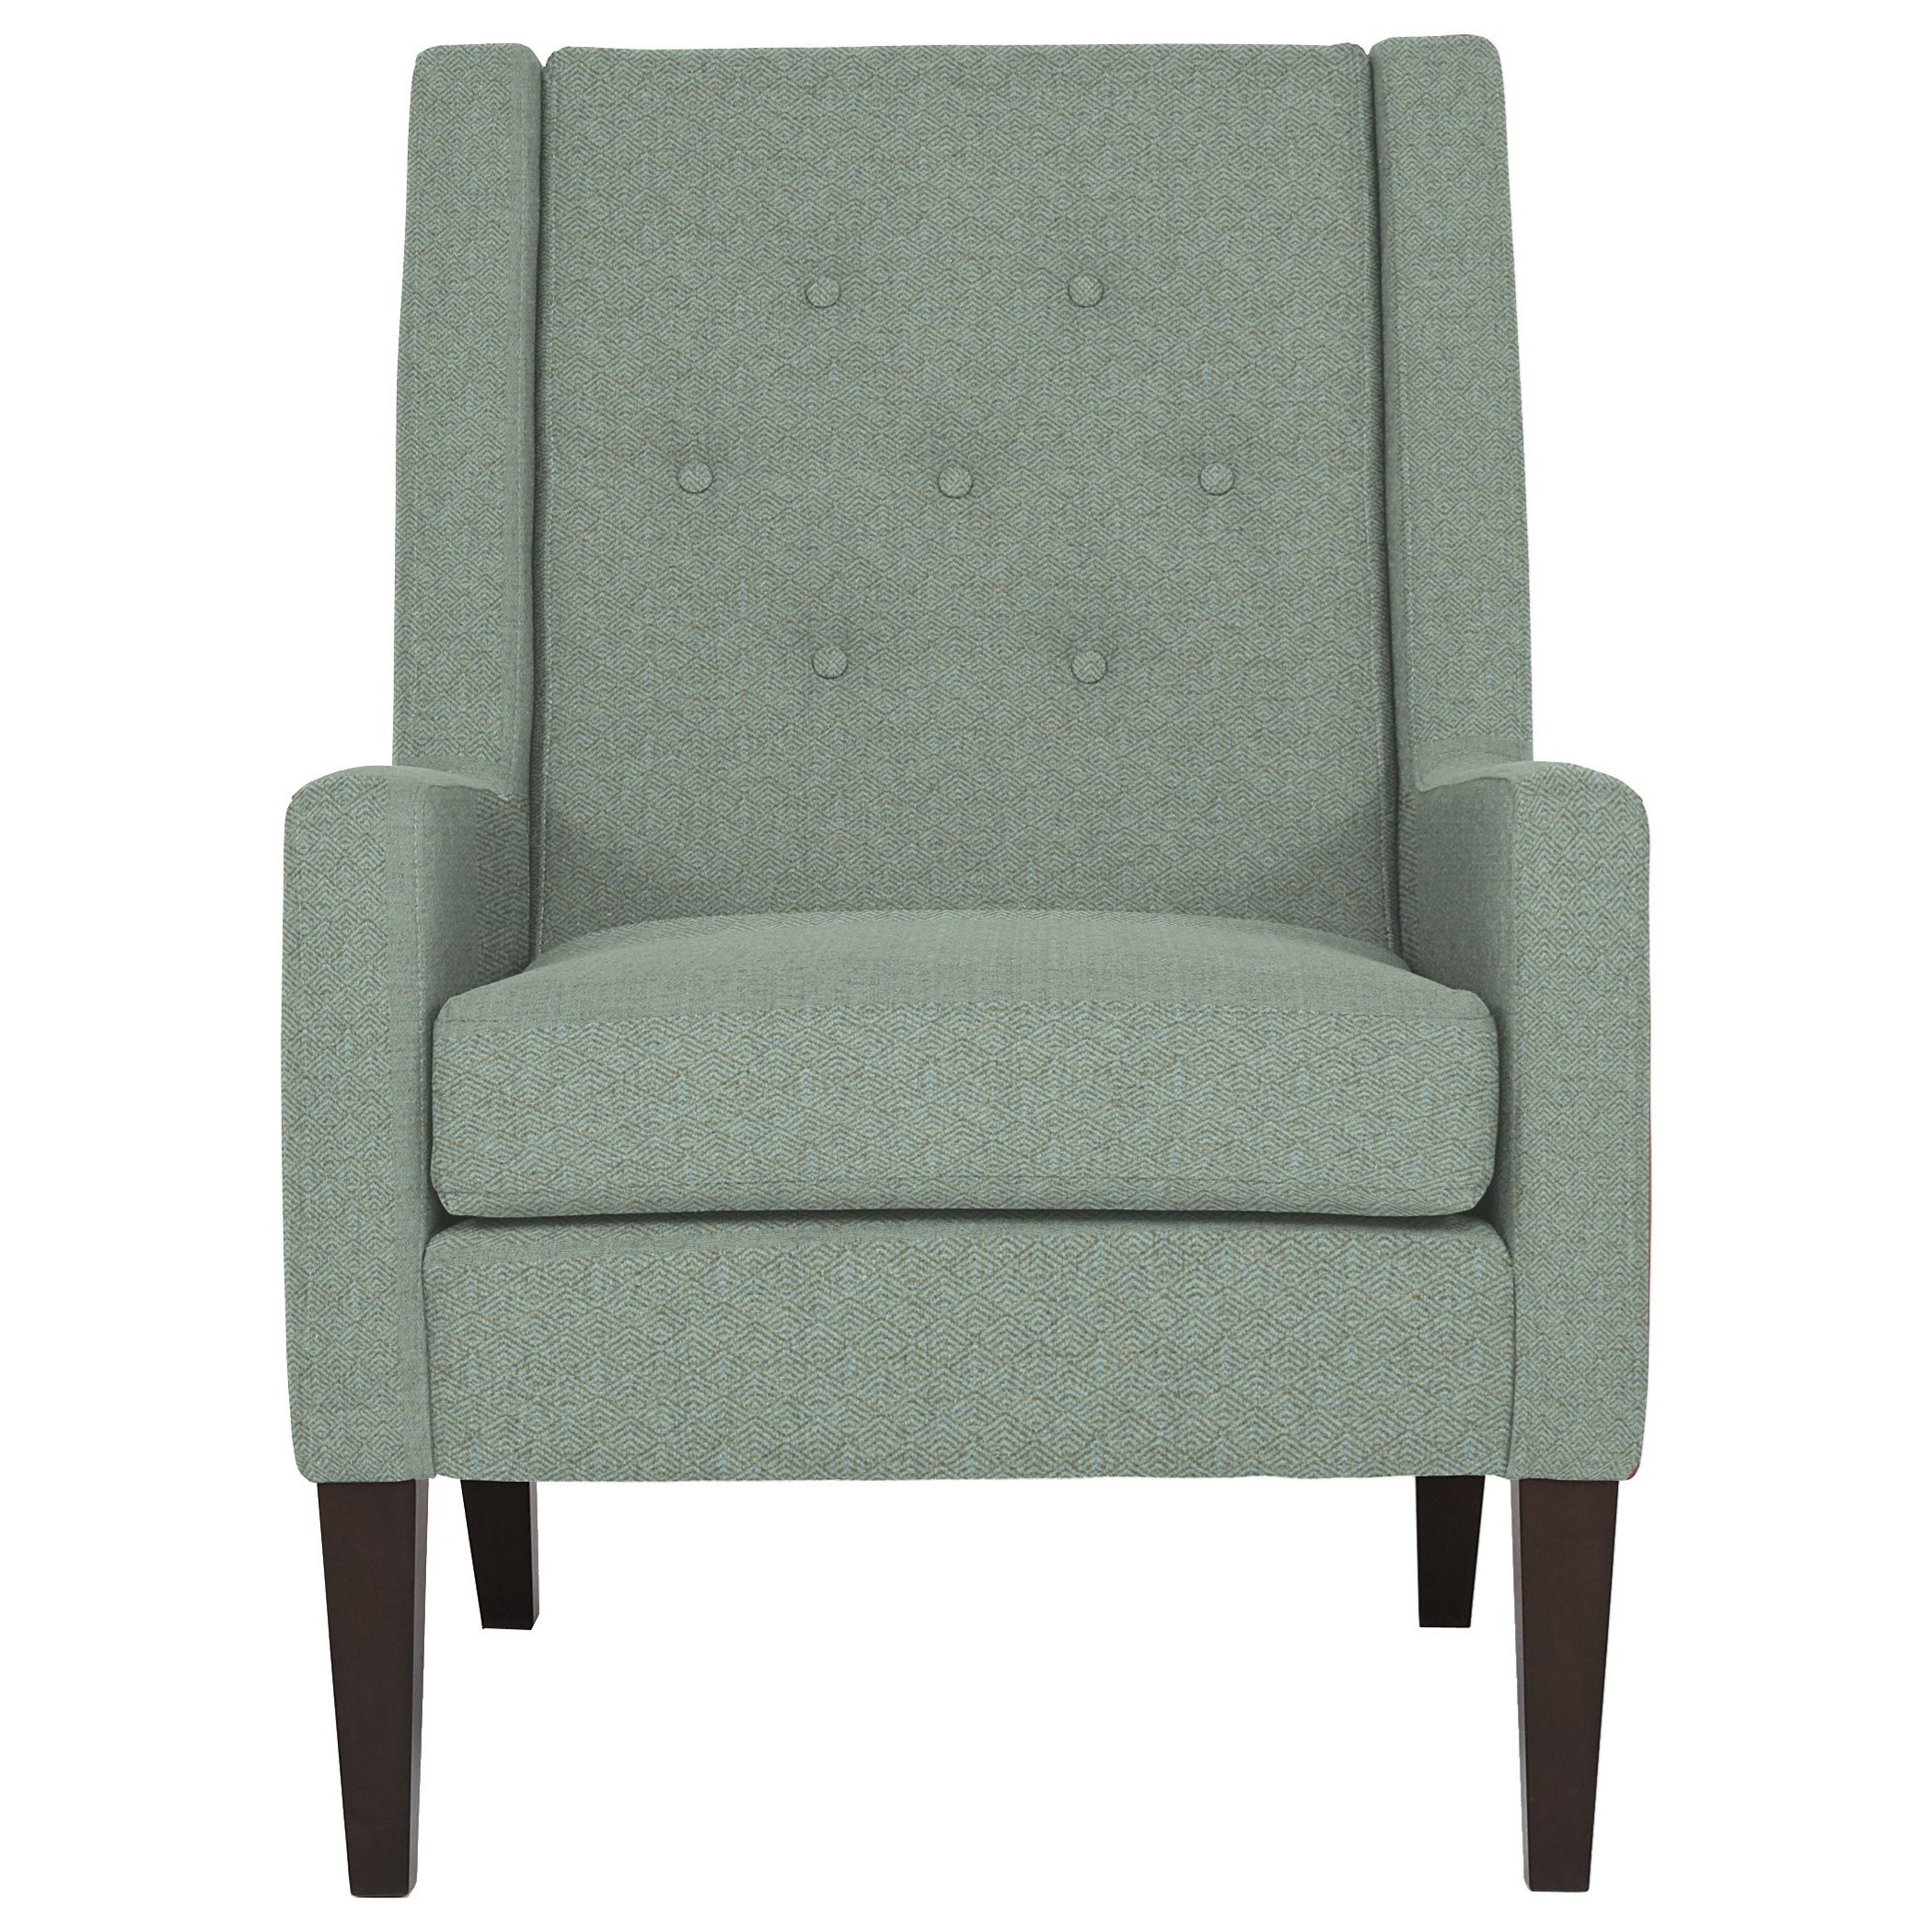 Best Home Furnishings Chairs - Accent Chair - Item Number: 2510-21082